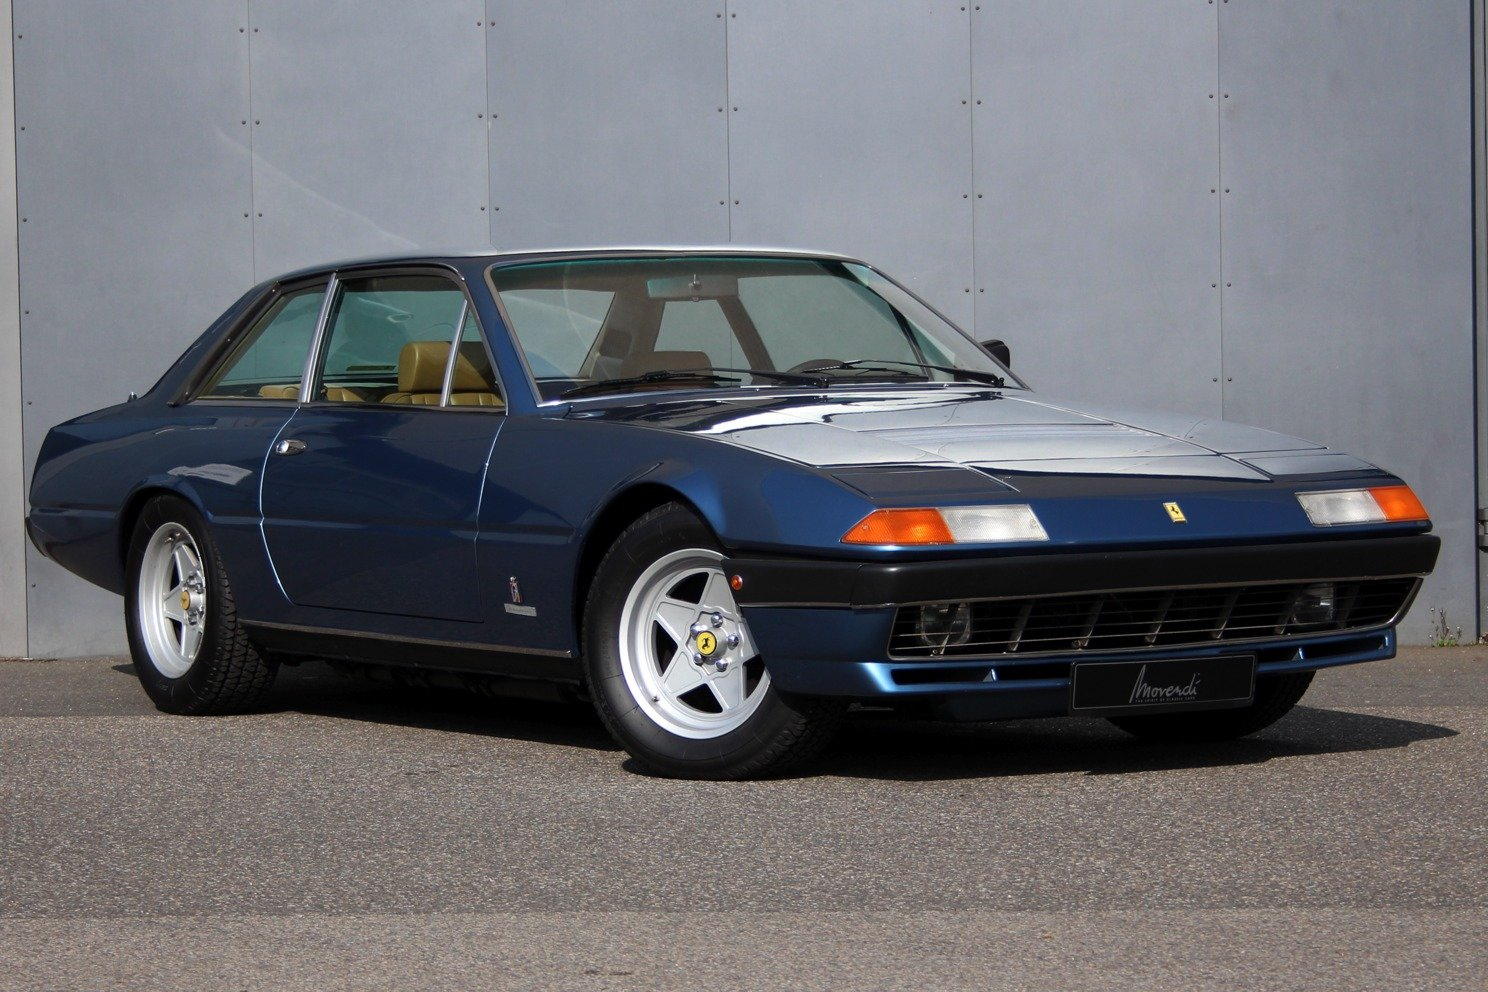 1981 Ferrari 400i LHD For Sale (picture 1 of 6)